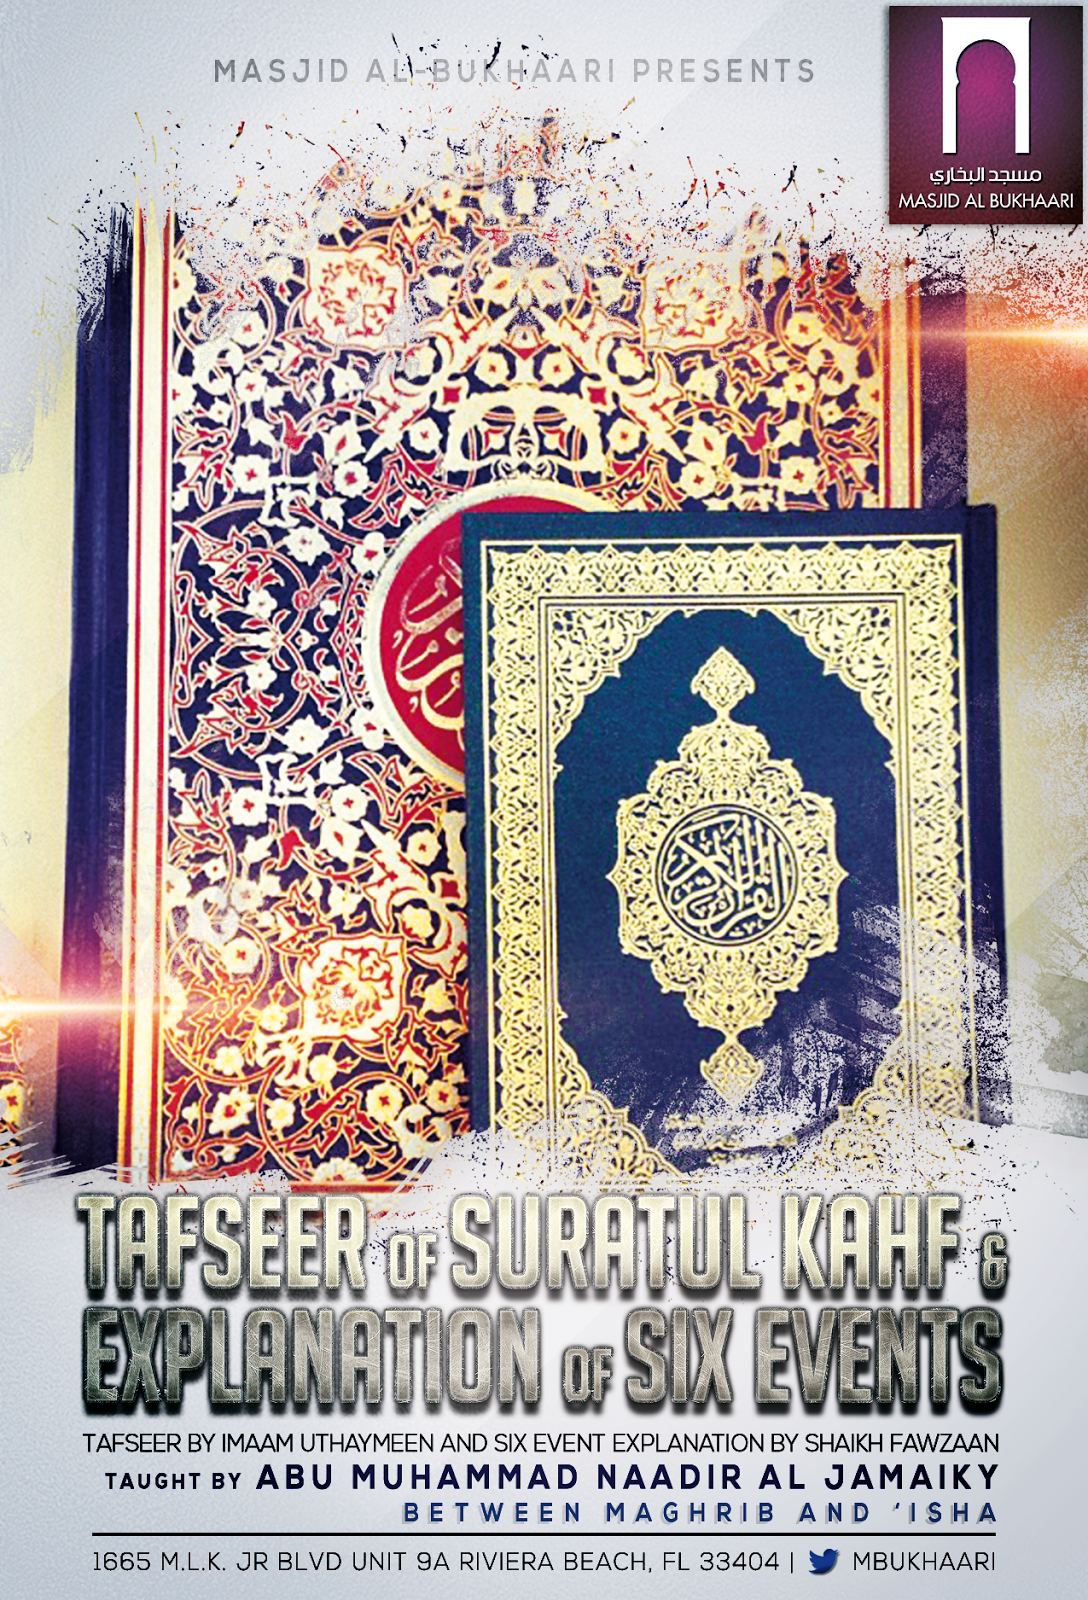 Tafseer Of Suratul Kahf & Explanation Of Six Events